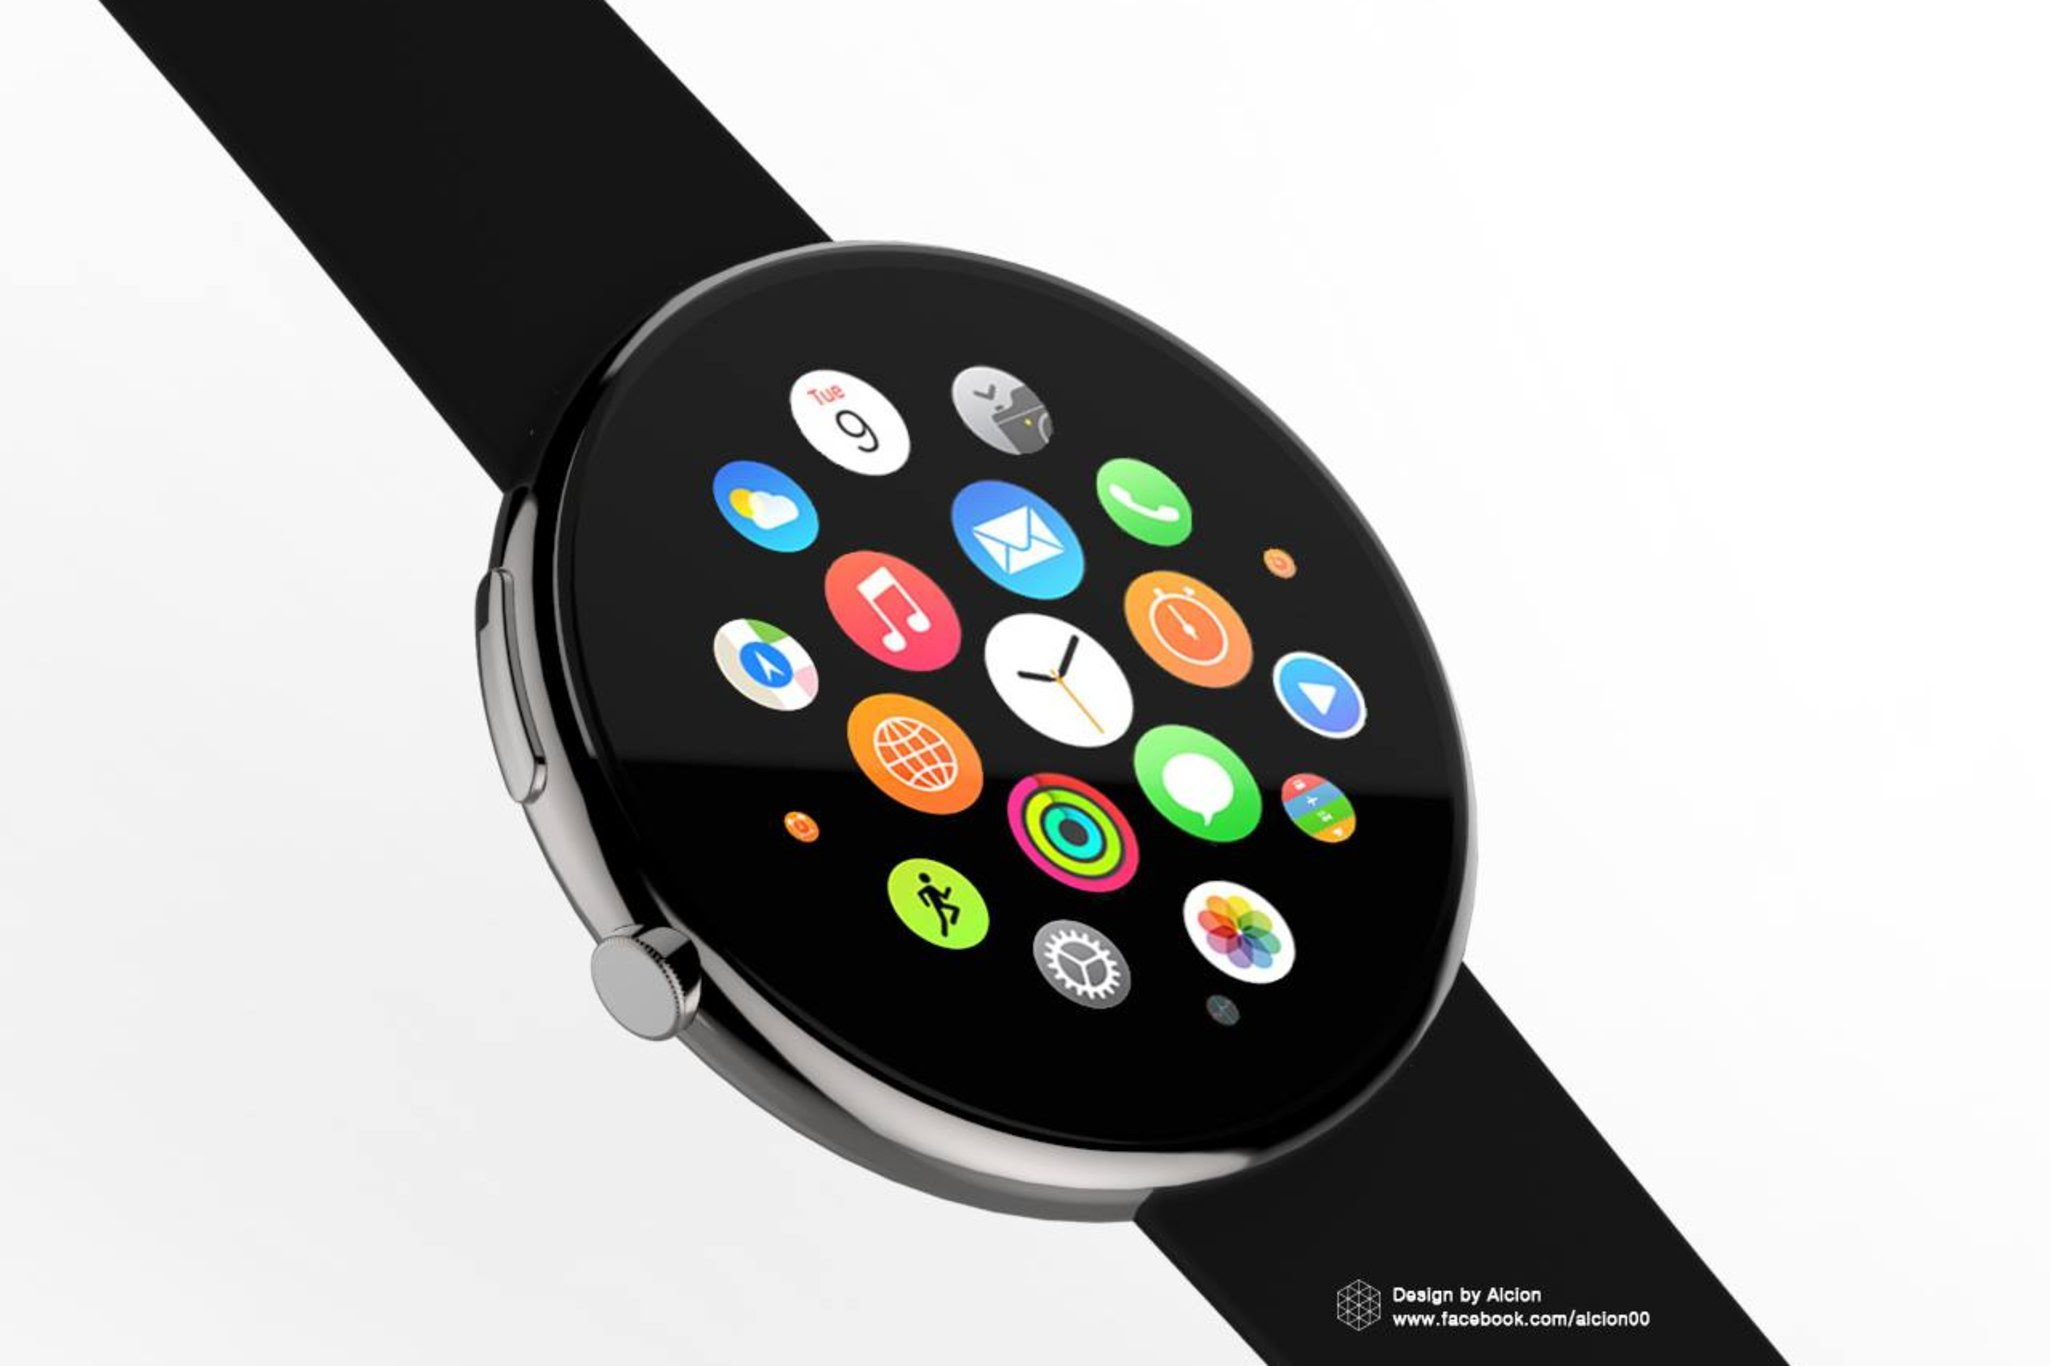 Funny Apple Watch Wallpapers  impremedia.net